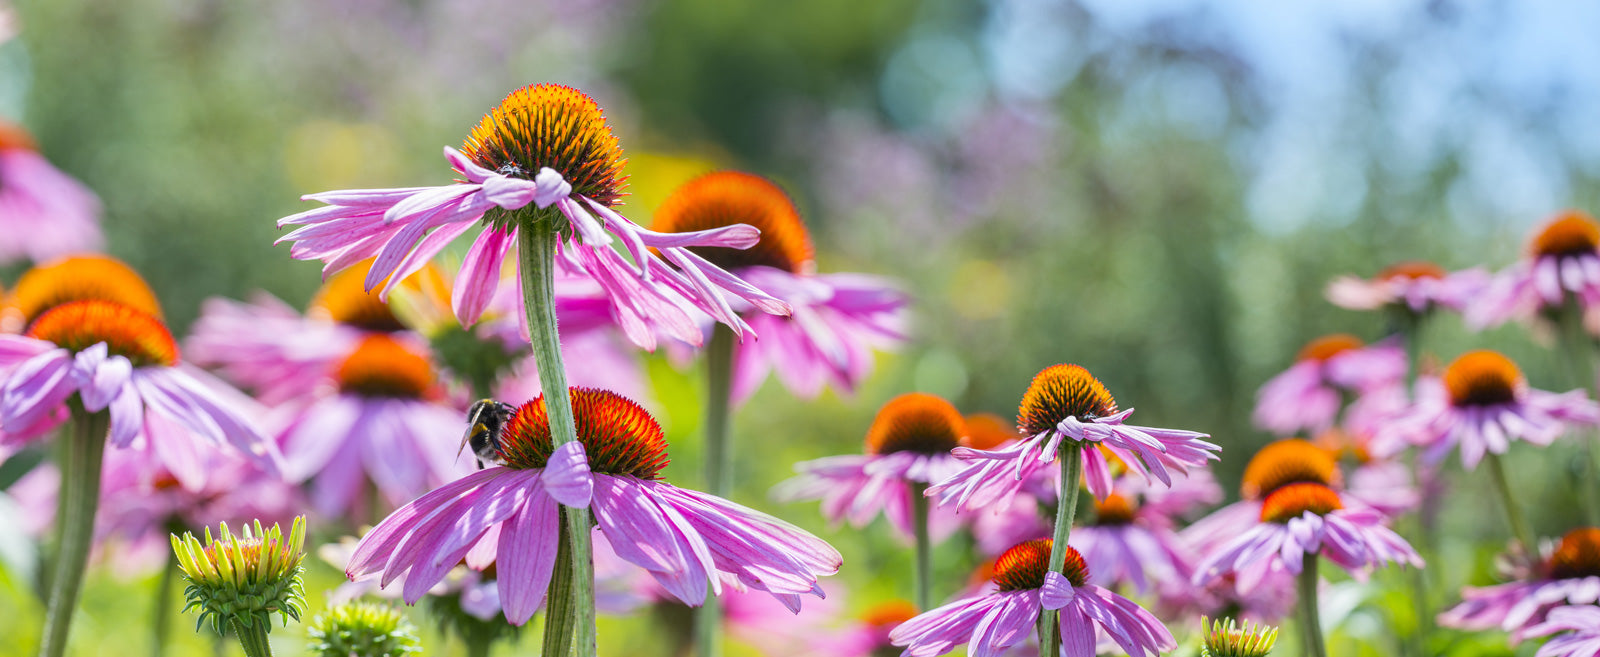 field of purple echinacea flowers